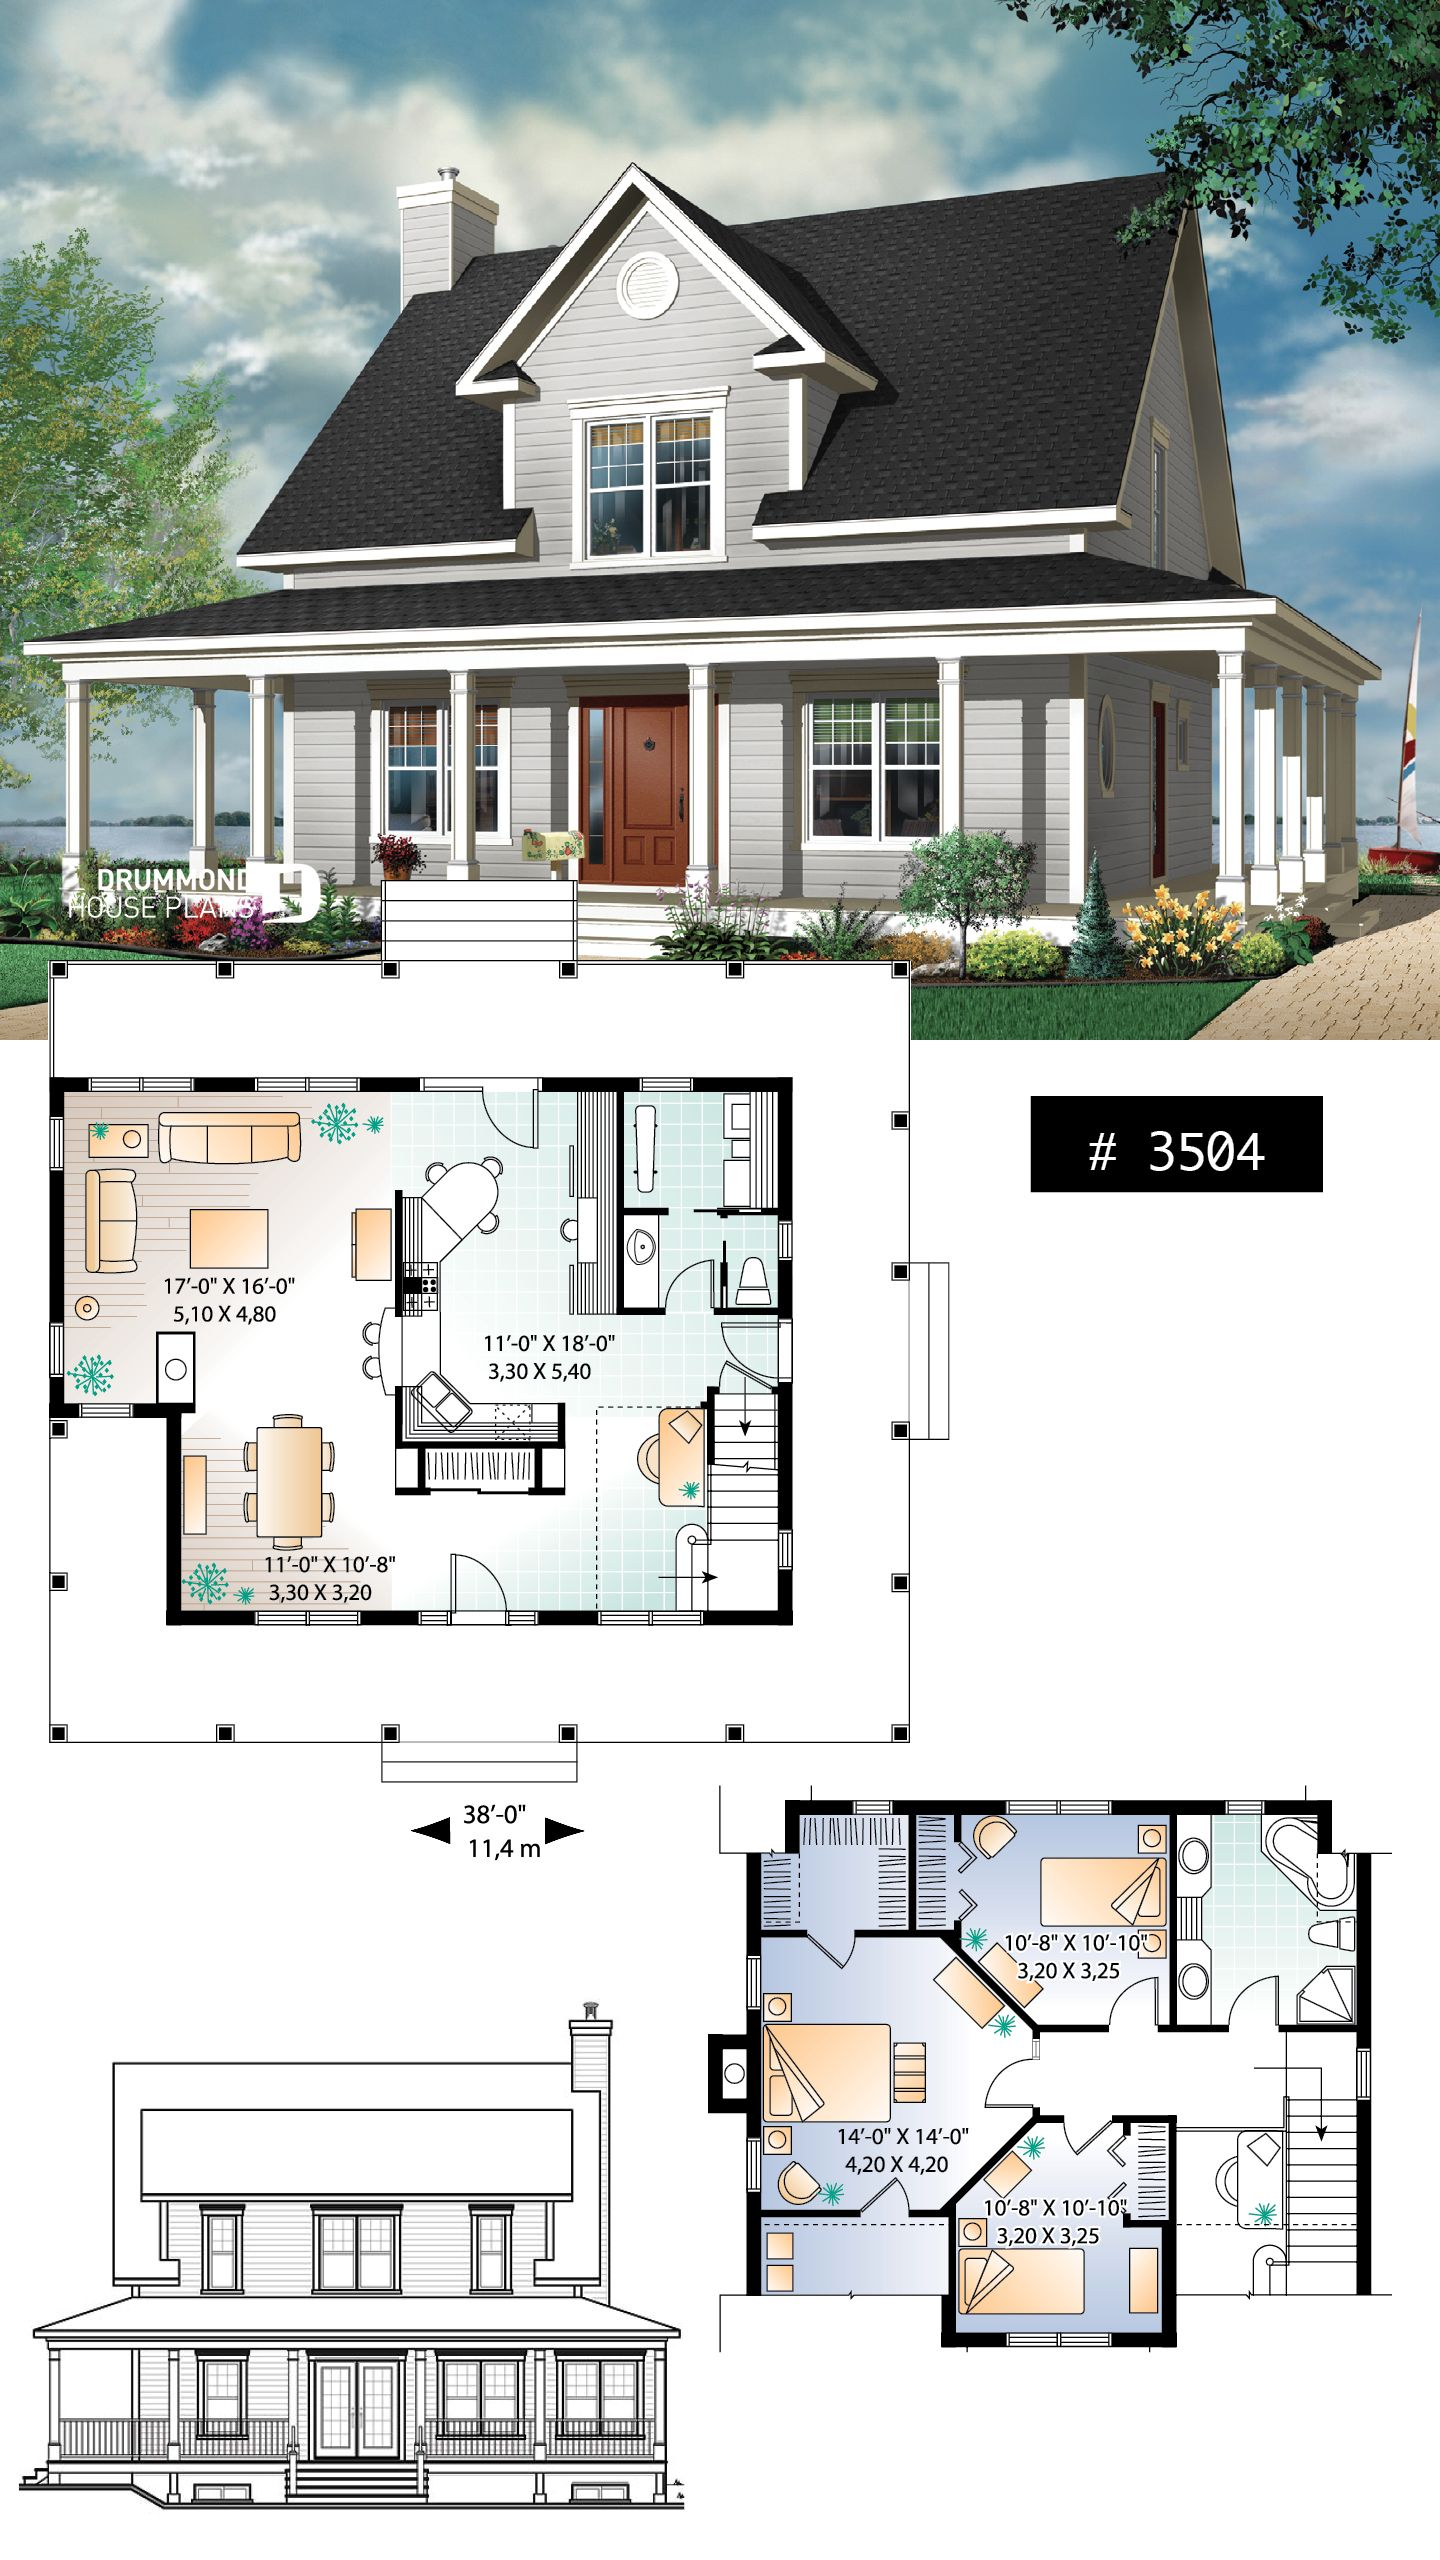 Discover The Plan 3504 Cumberland Which Will Please You For Its 3 Bedrooms And For Its Farmhouse Styles Farmhouse Style House Plans Sims House Design House Plans